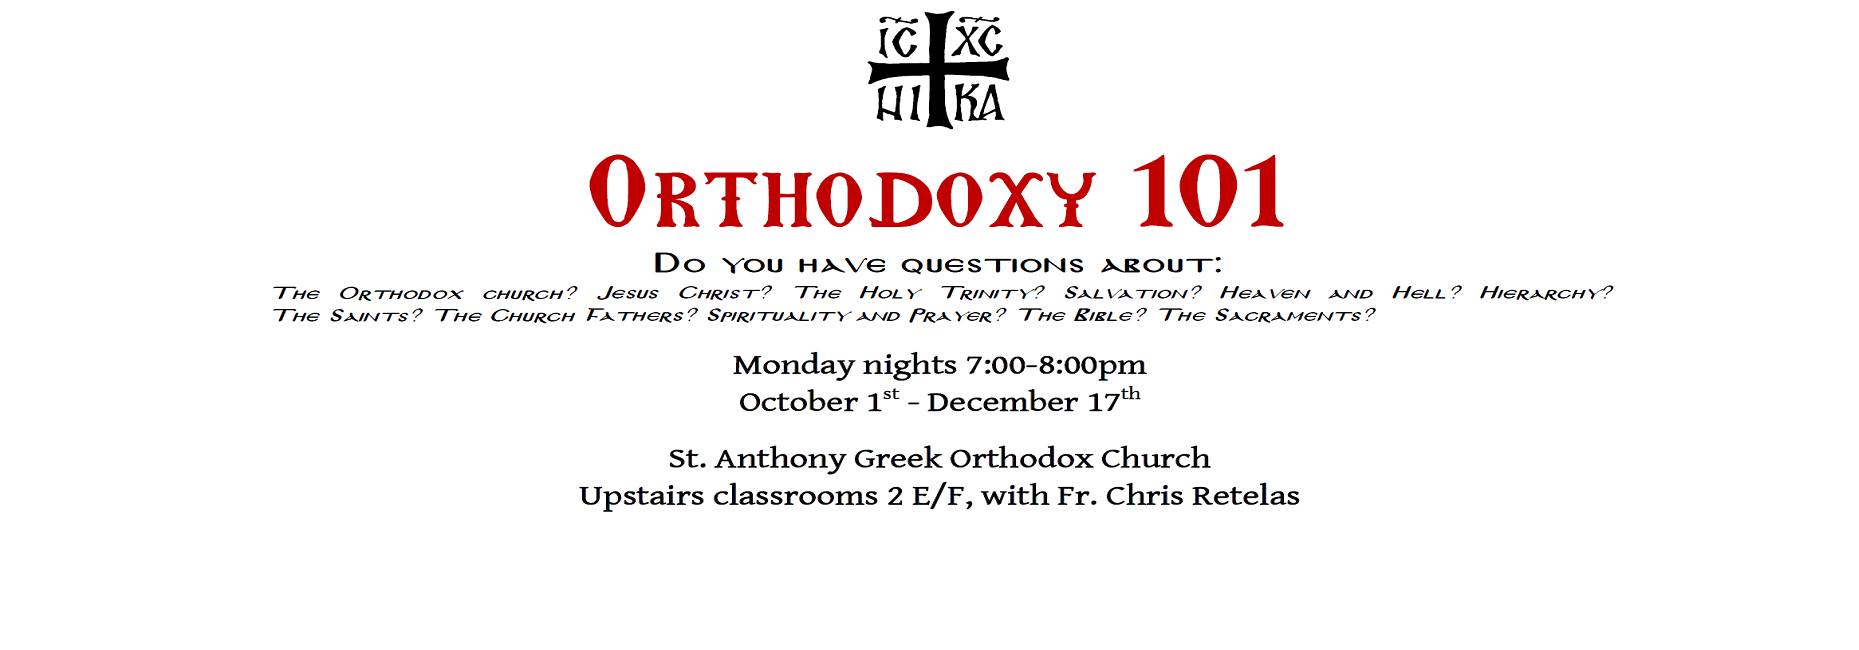 Orthodoxy 101 classes